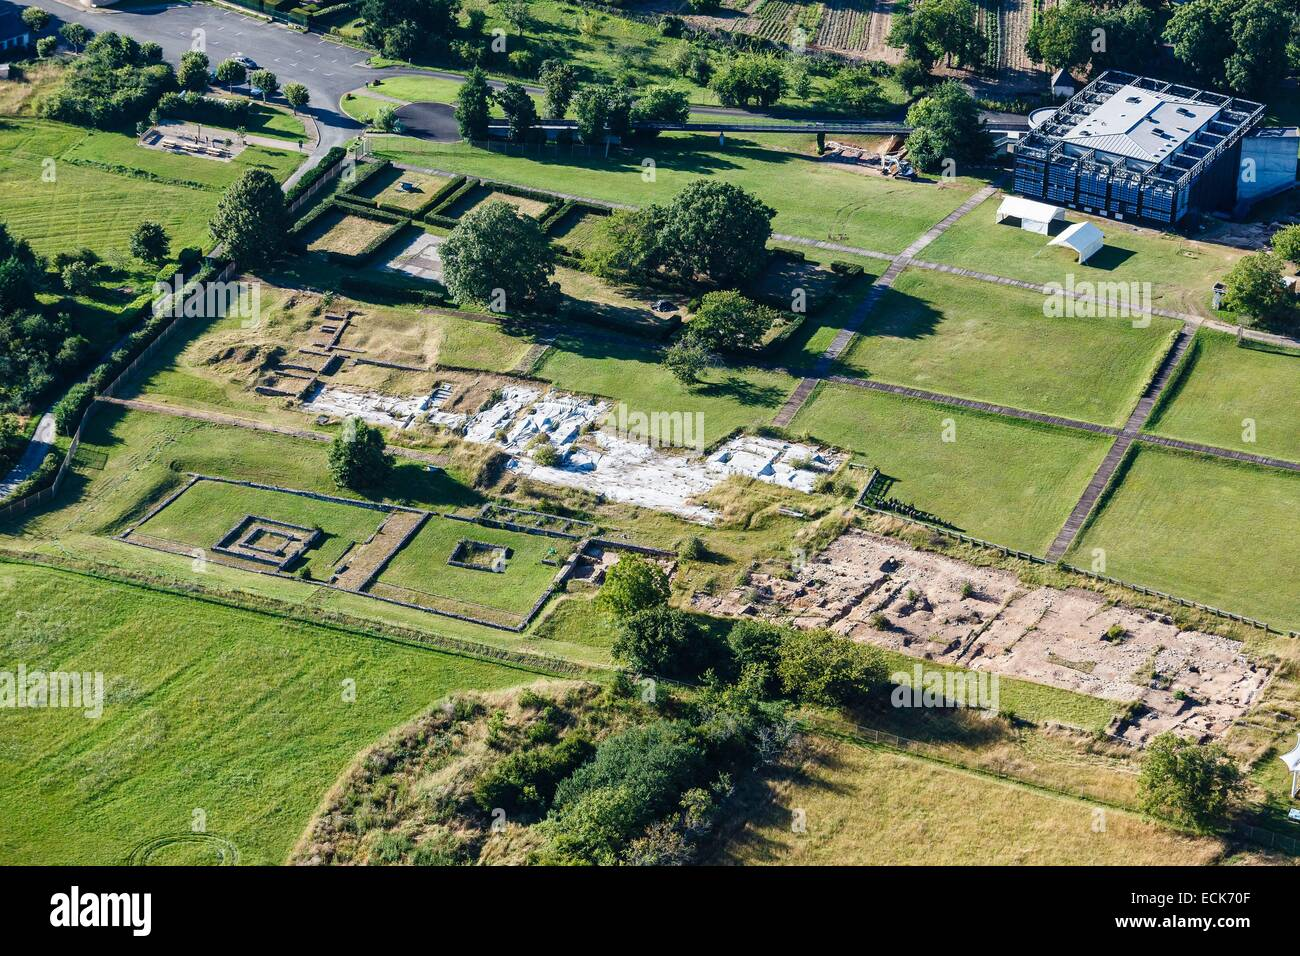 France, Indre, Saint Marcel, archaelogical excavation (aerial view) - Stock Image